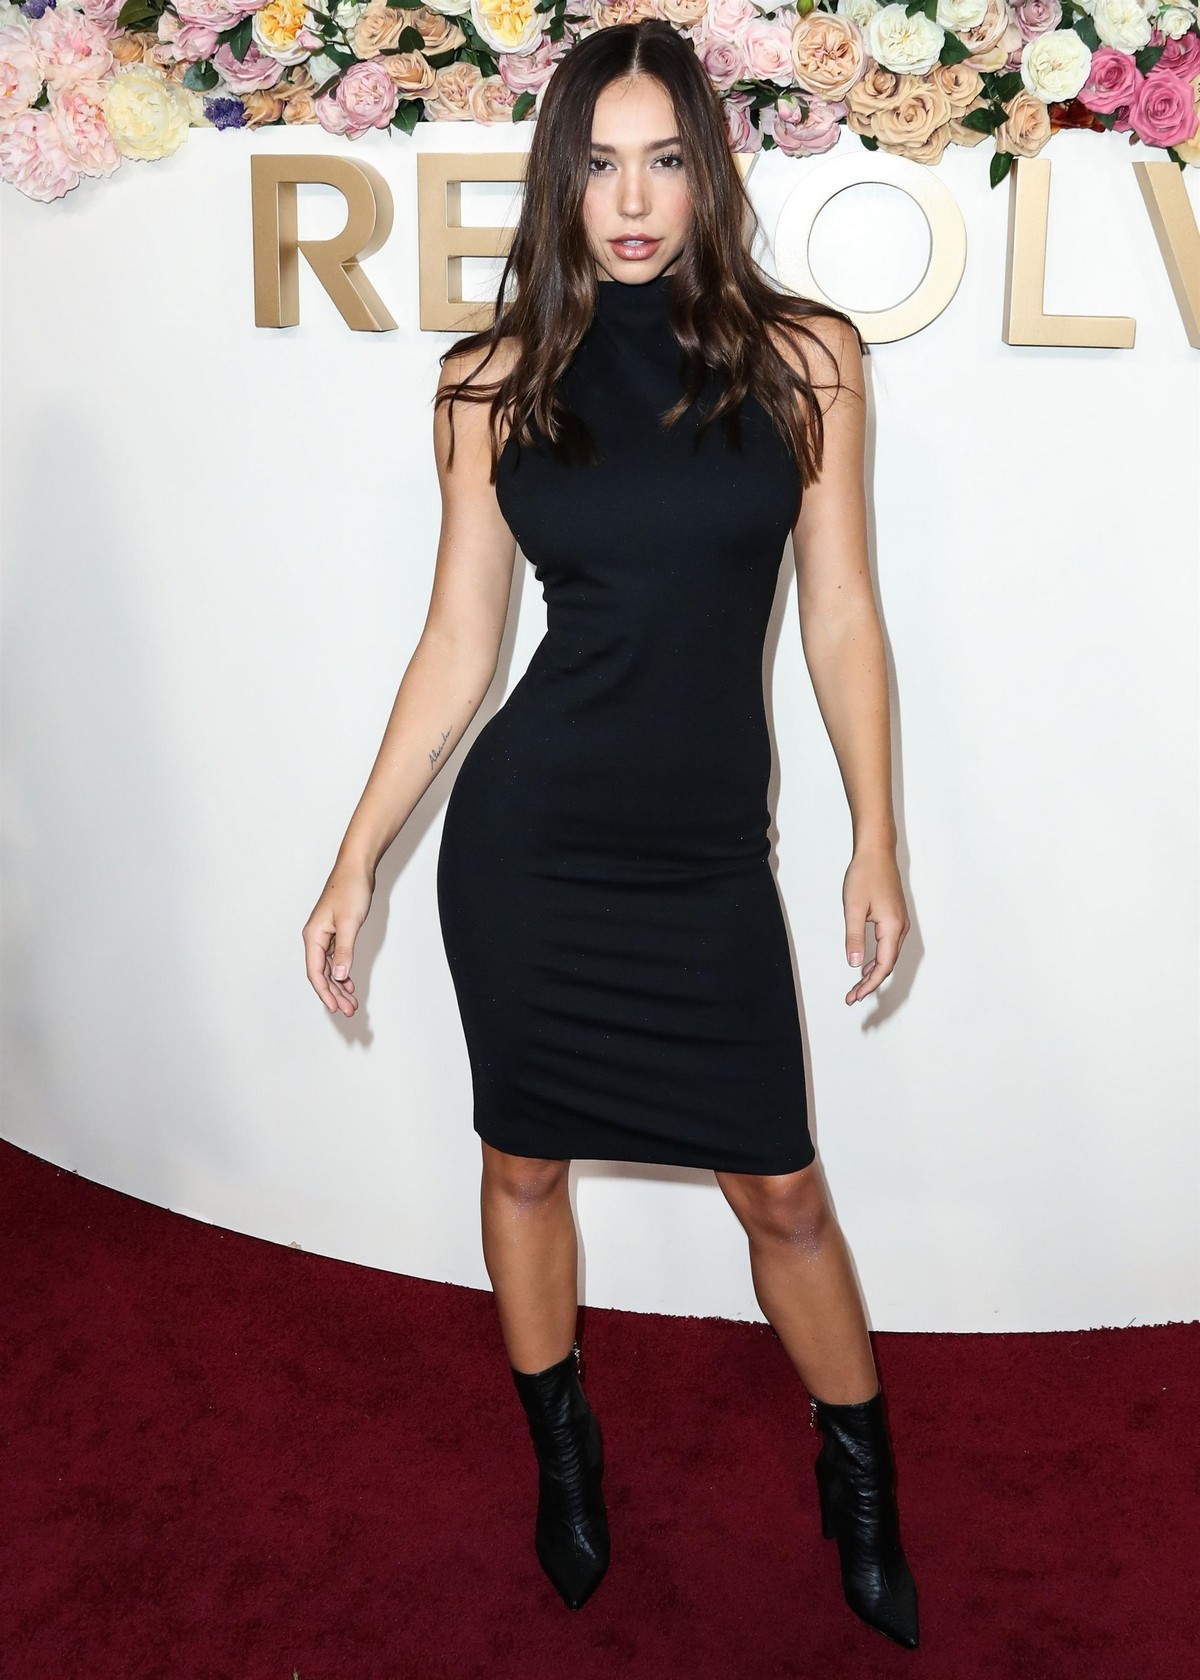 Alexis Ren in Black Dress at 3rd Annual #Revolve Awards in Hollywood 2019/11/15 15